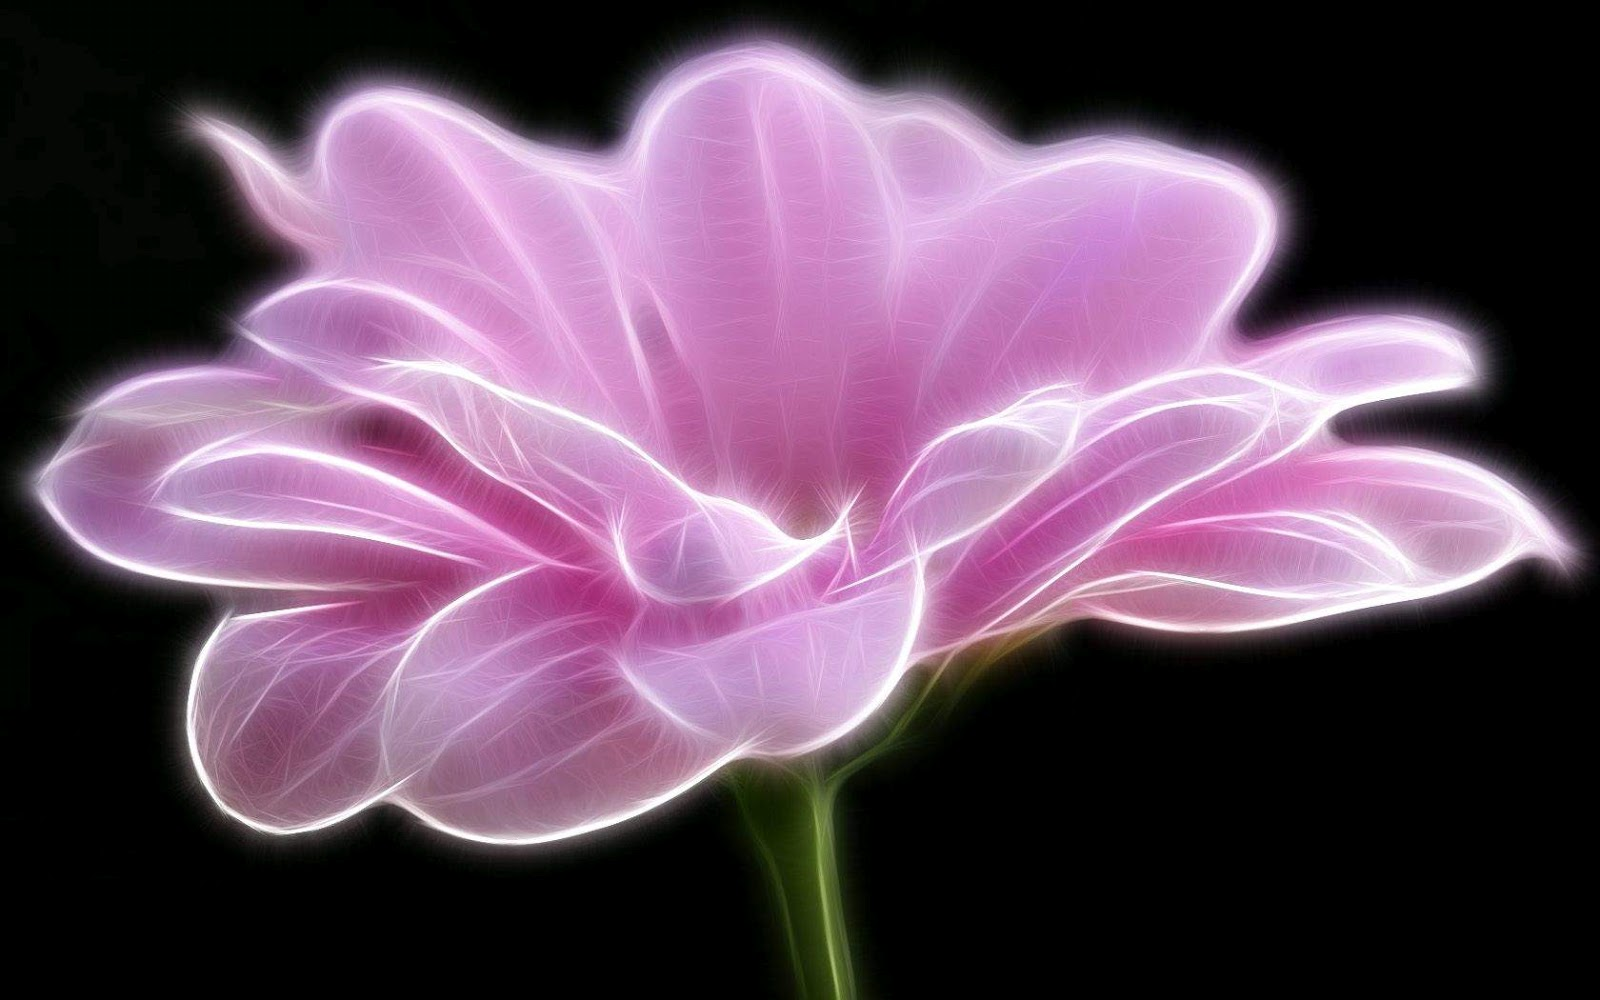 Black And White Wallpapers Artistic Pink Flower Wallpaper